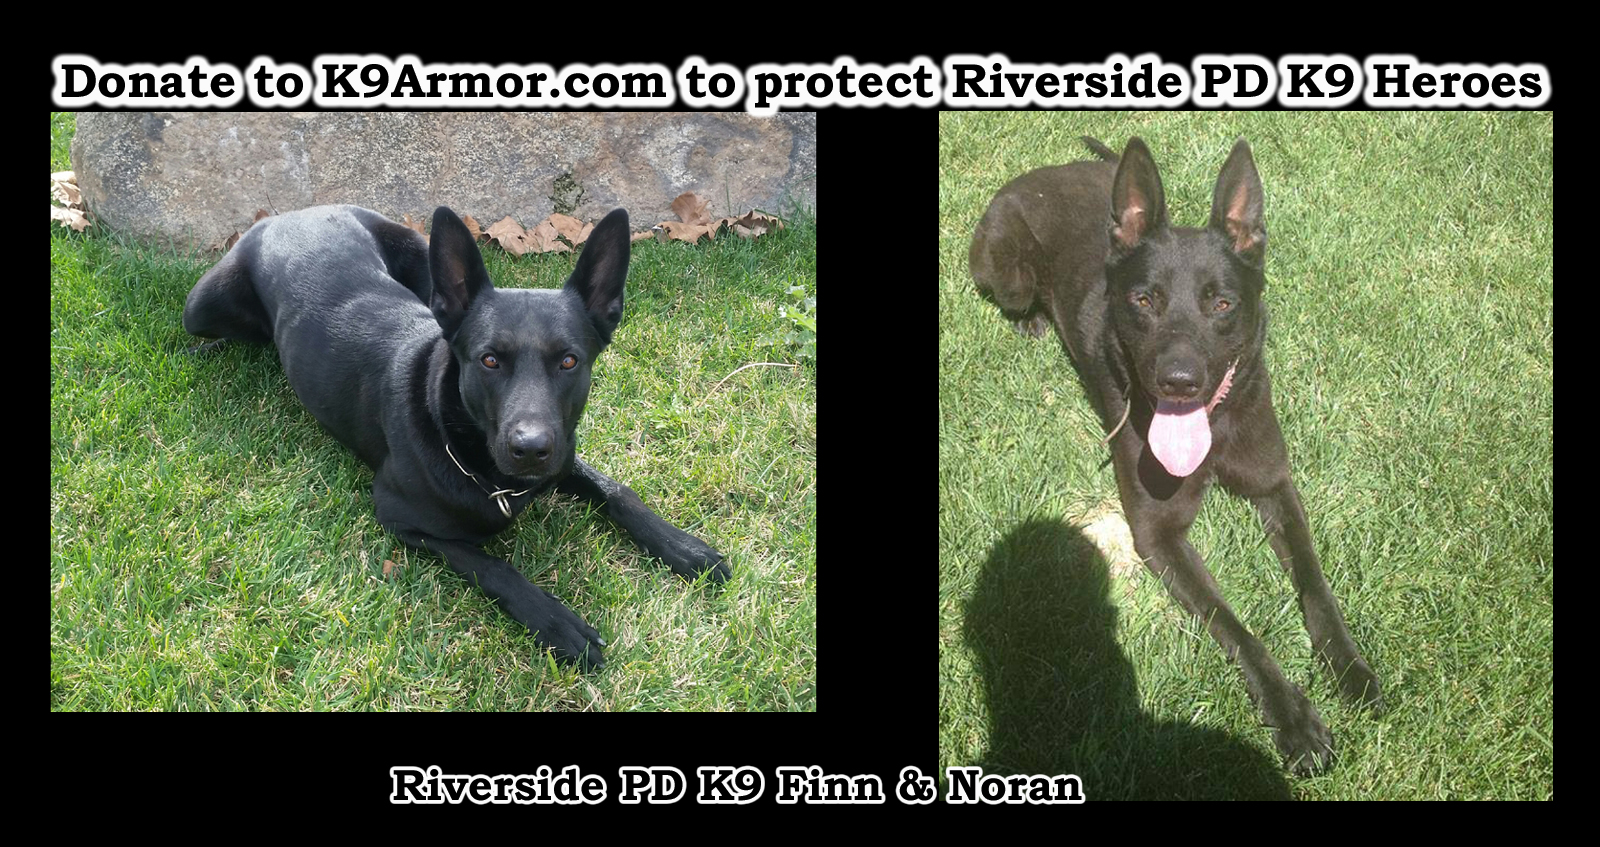 K-9 Armor needs $875.00 for one more vest for Riverside PD K9 Finn and Noran